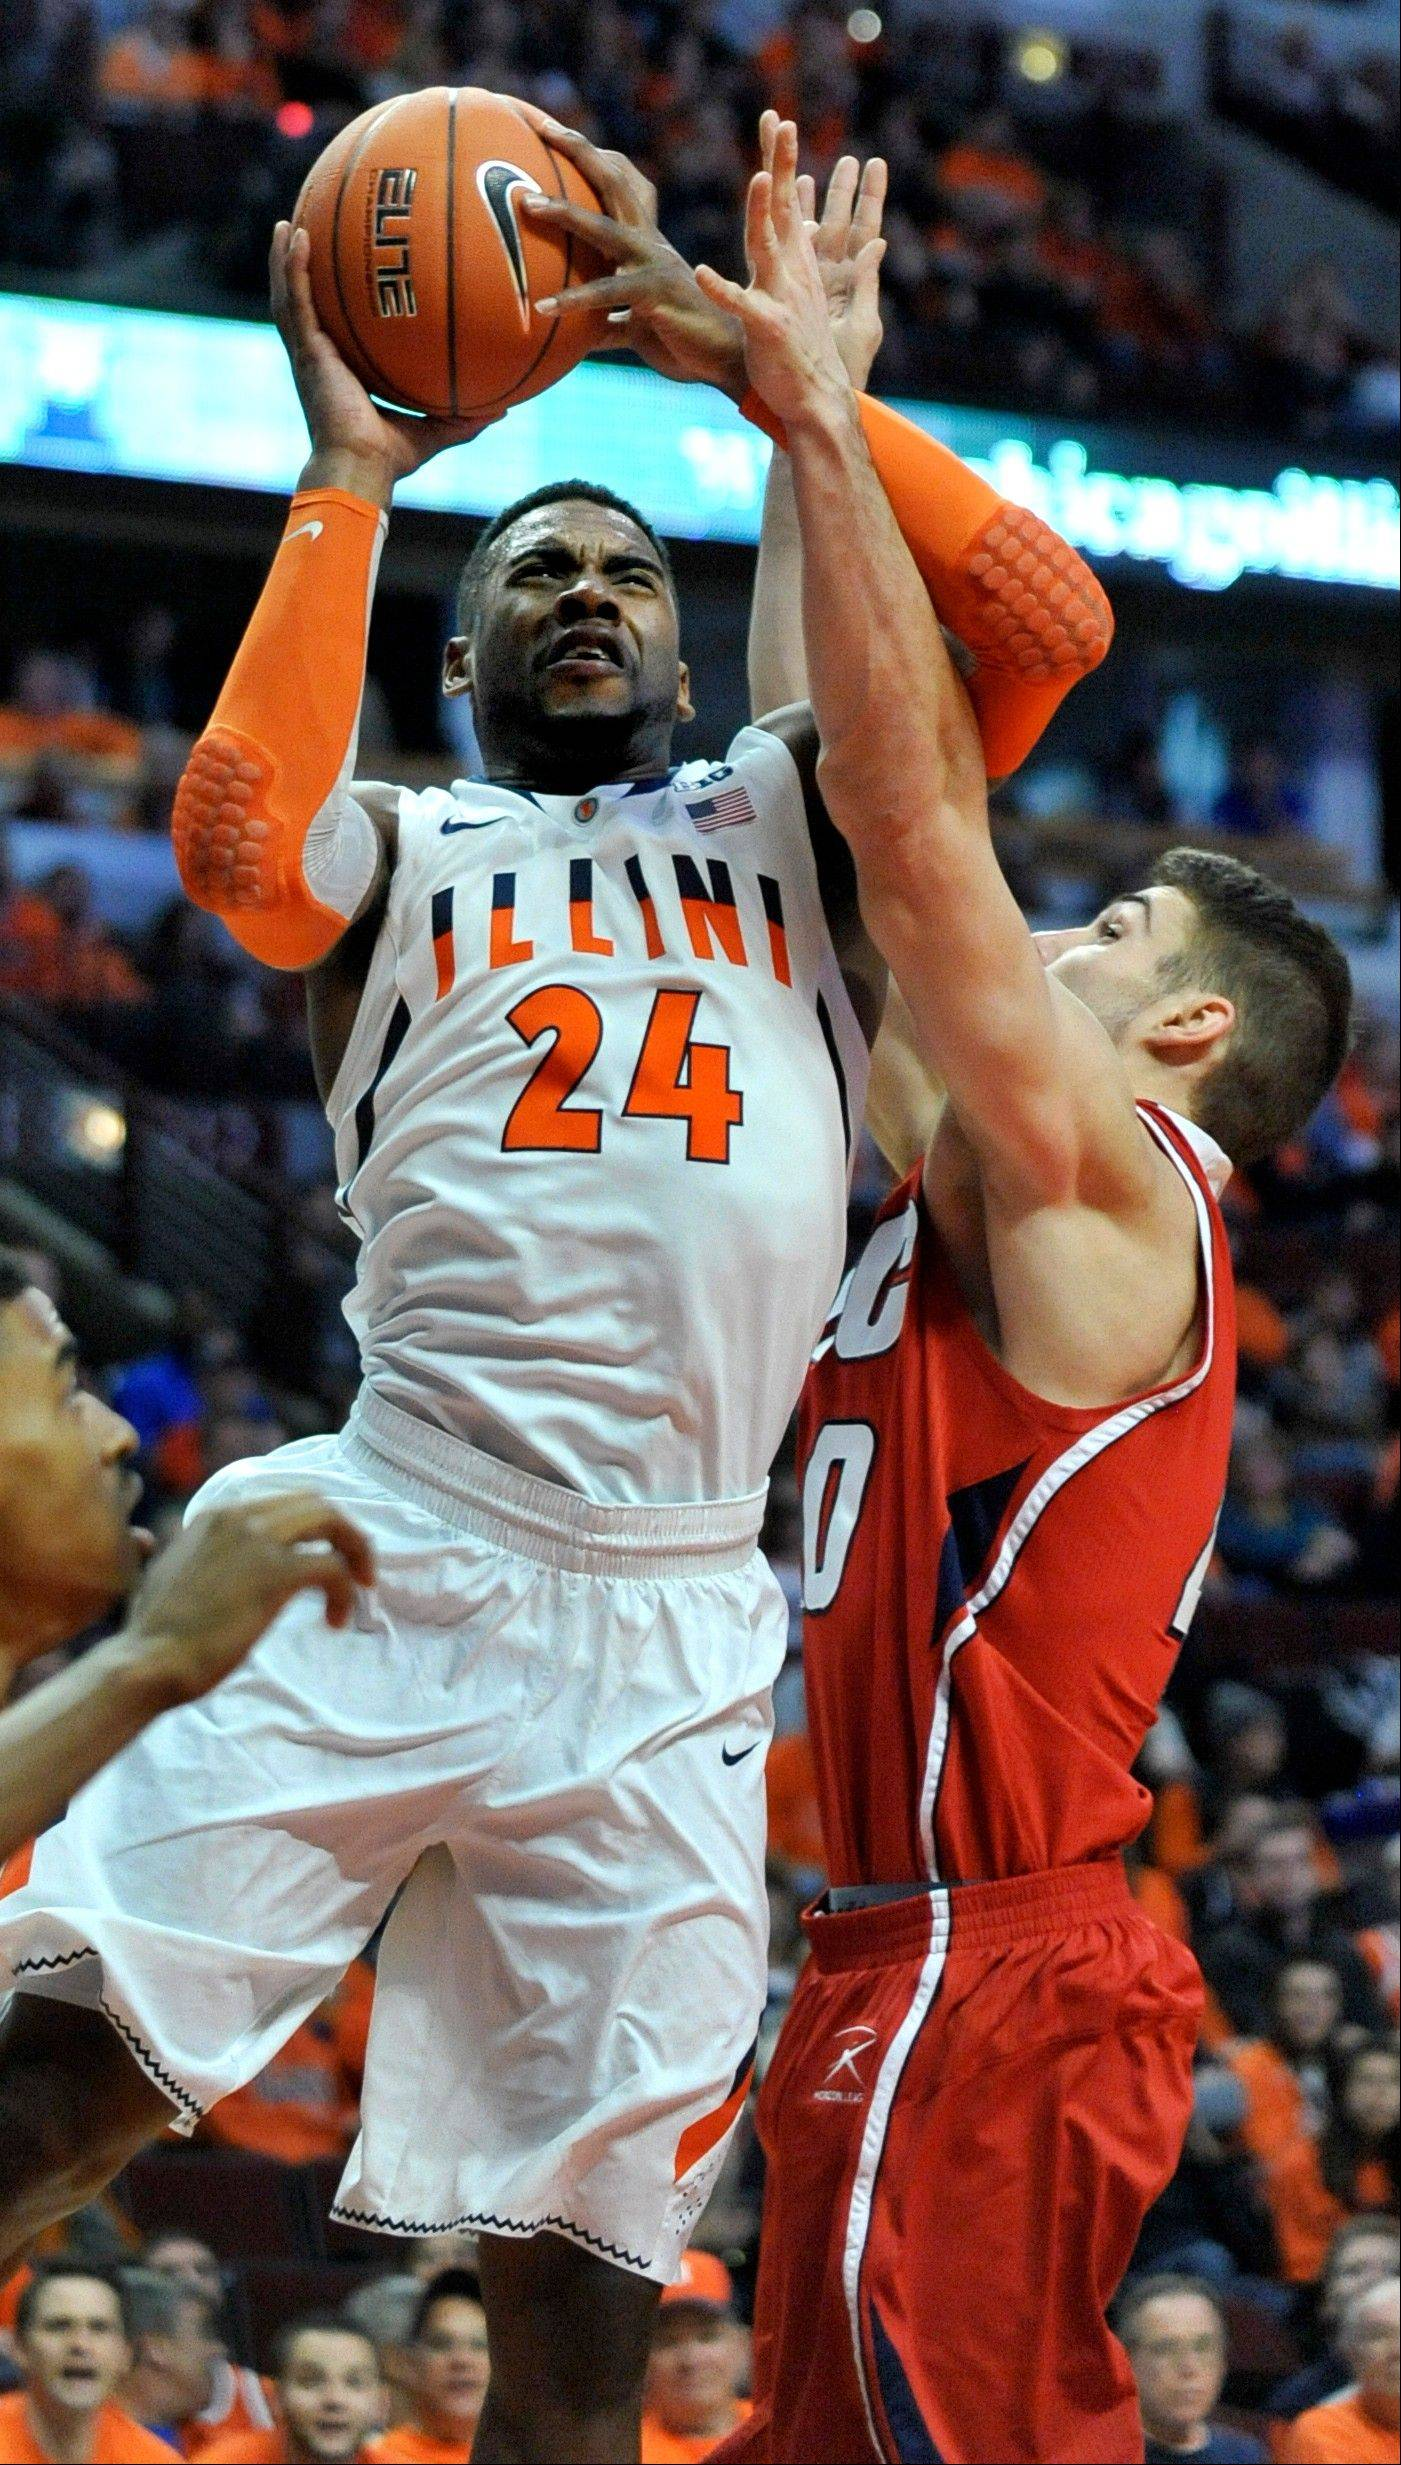 Illinois' Ravonte Rice (24) goes up for a shot against Illinois-Chicago's Jake Wiegeand (40) during the first half of an NCAA college basketball game in Chicago, Saturday, Dec., 28, 2013. (AP Photo/Paul Beaty)